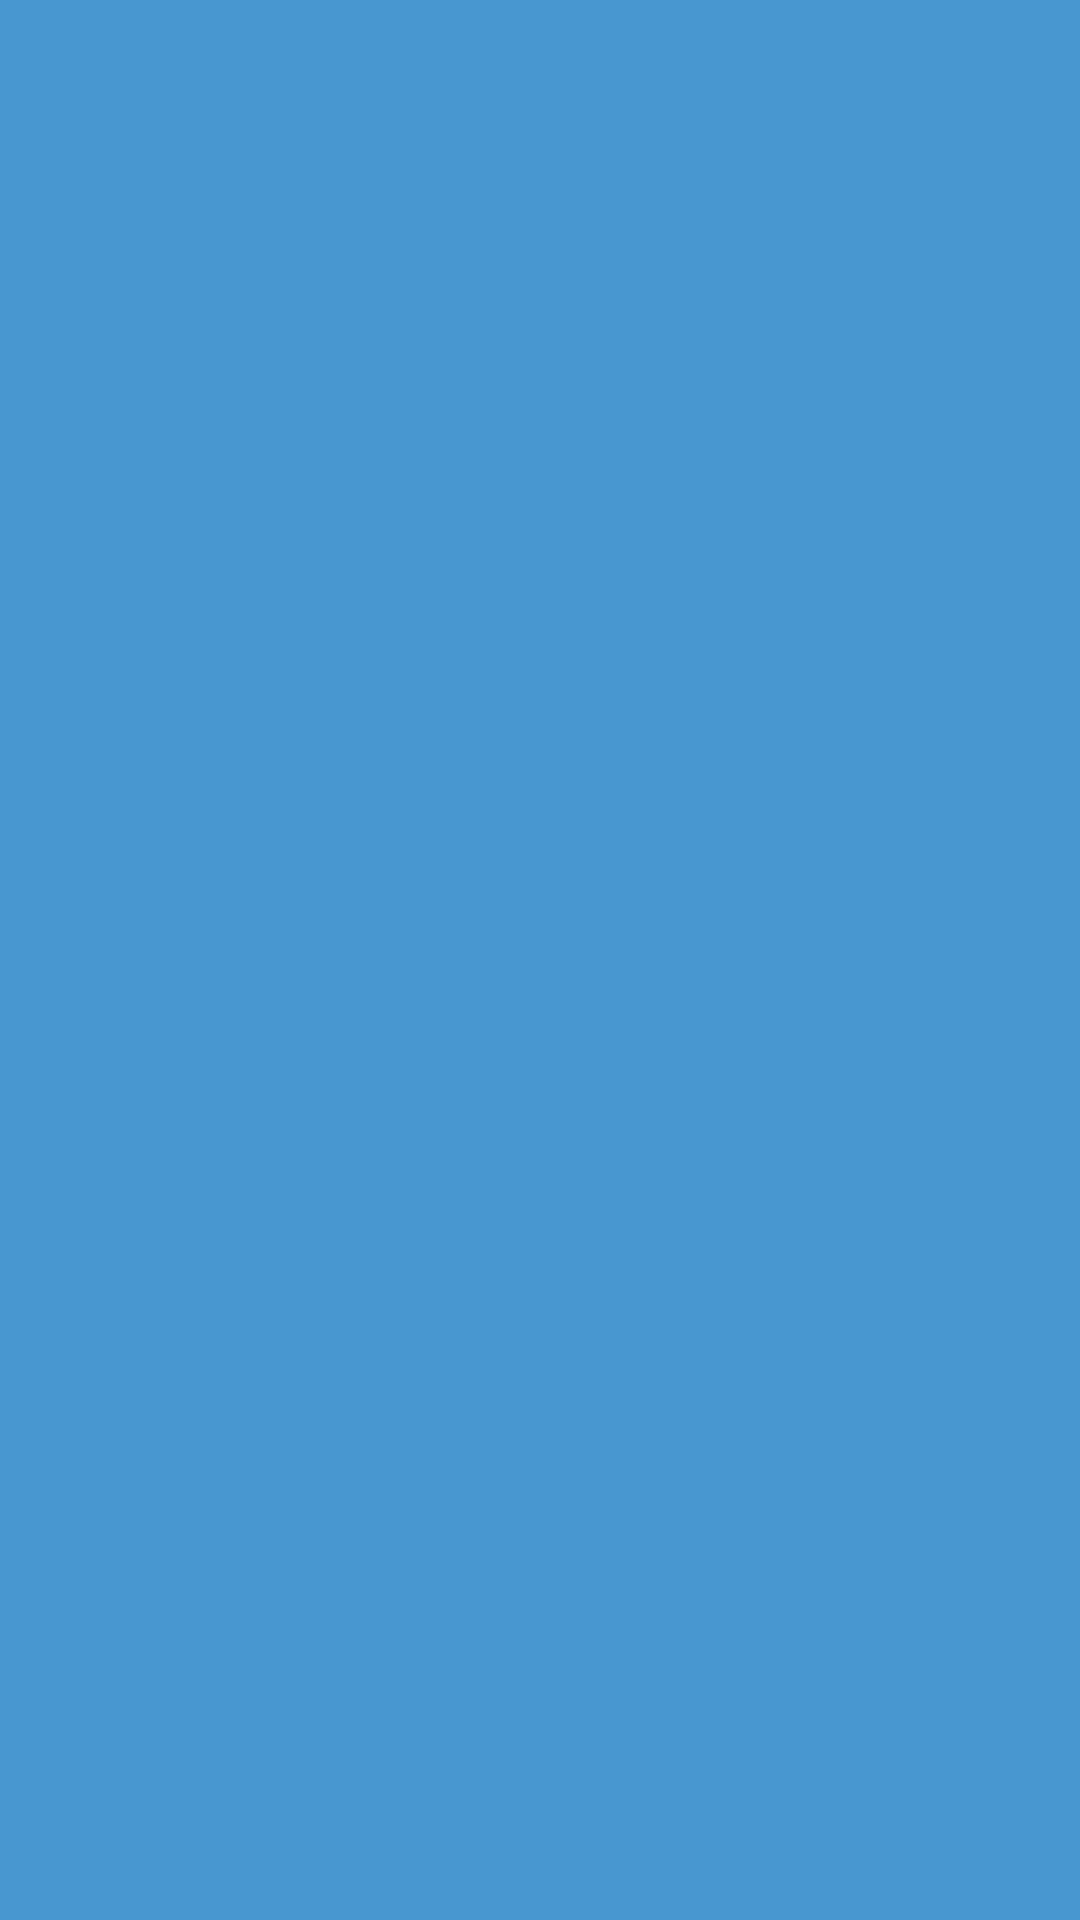 1080x1920 Celestial Blue Solid Color Background